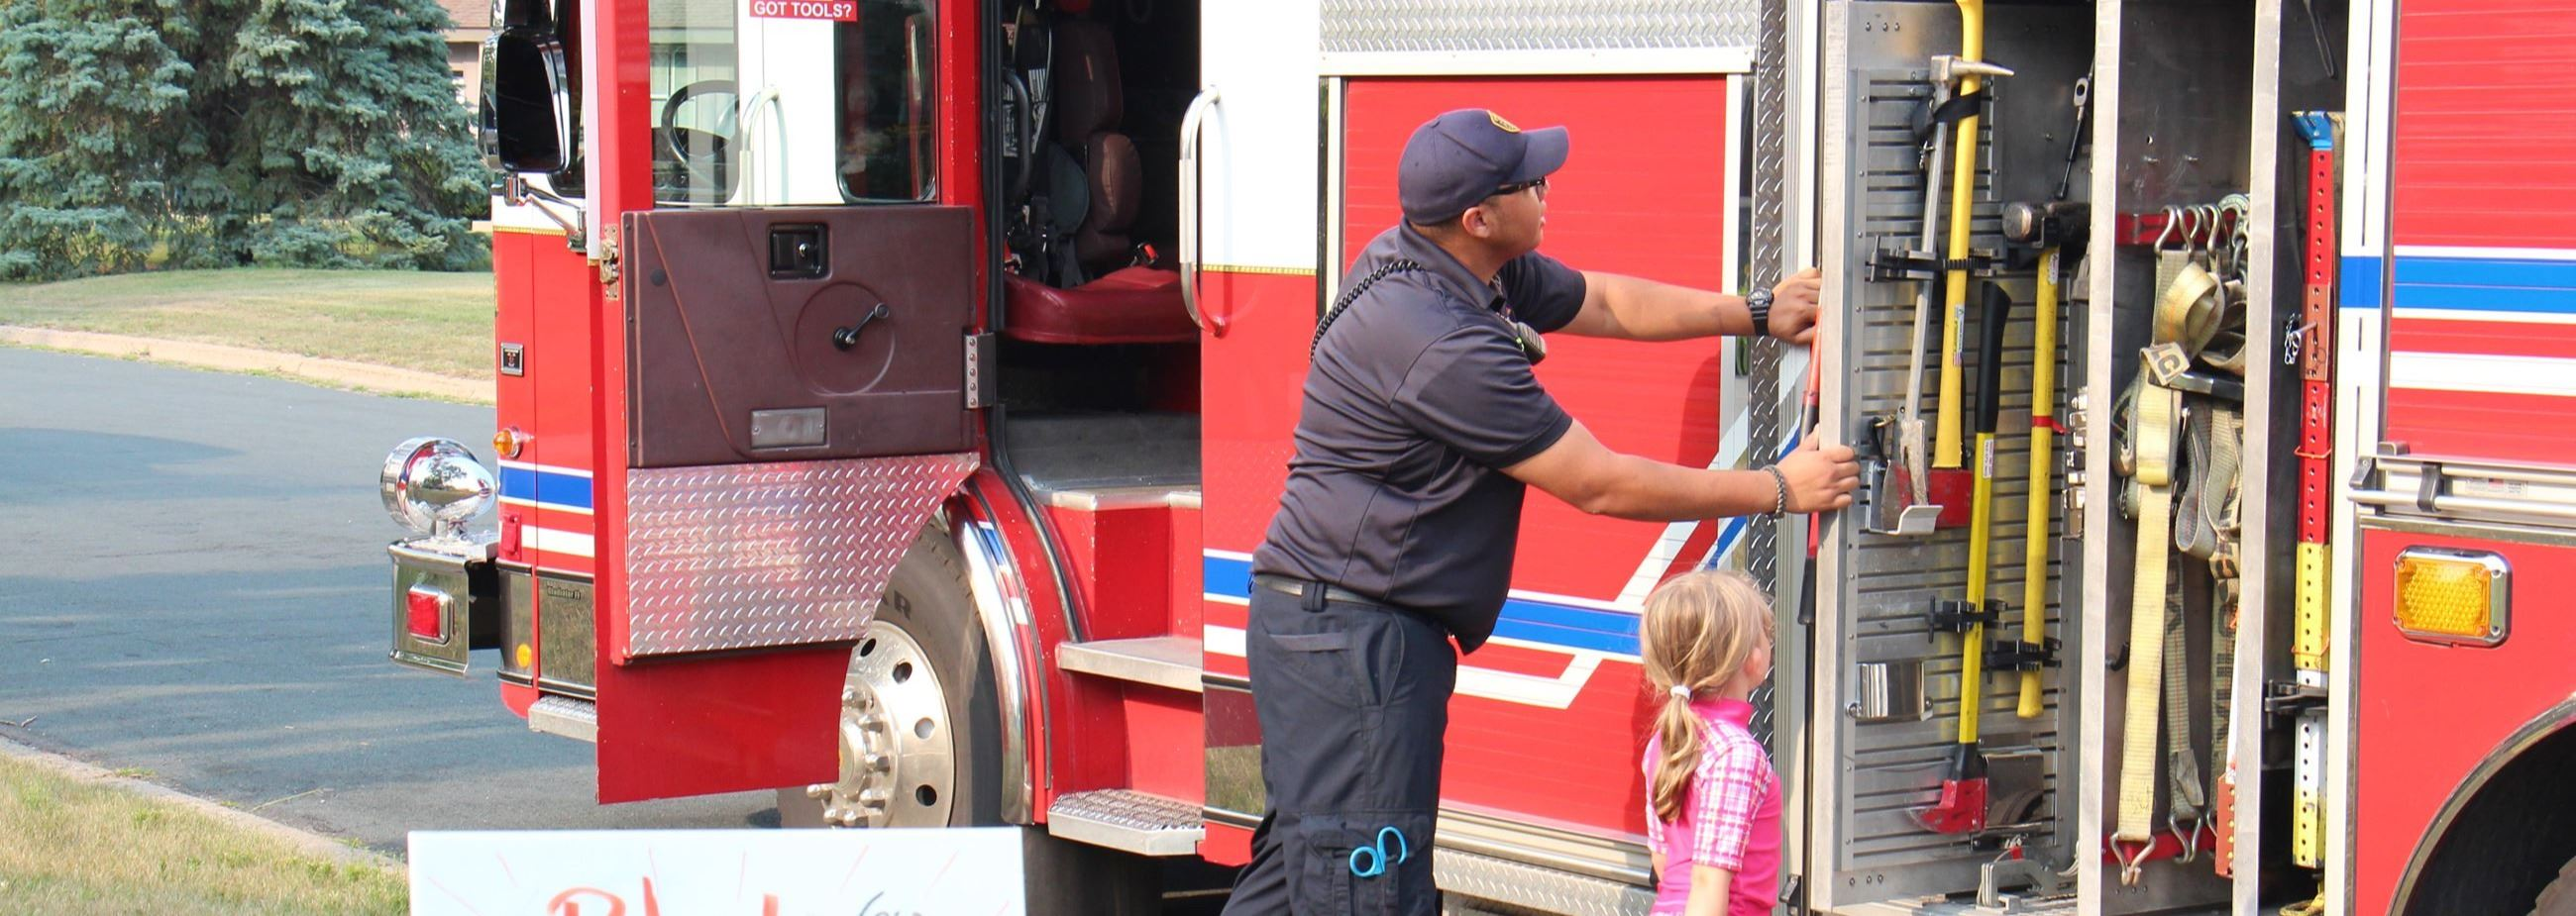 Firefighter and kid explore the fire truck